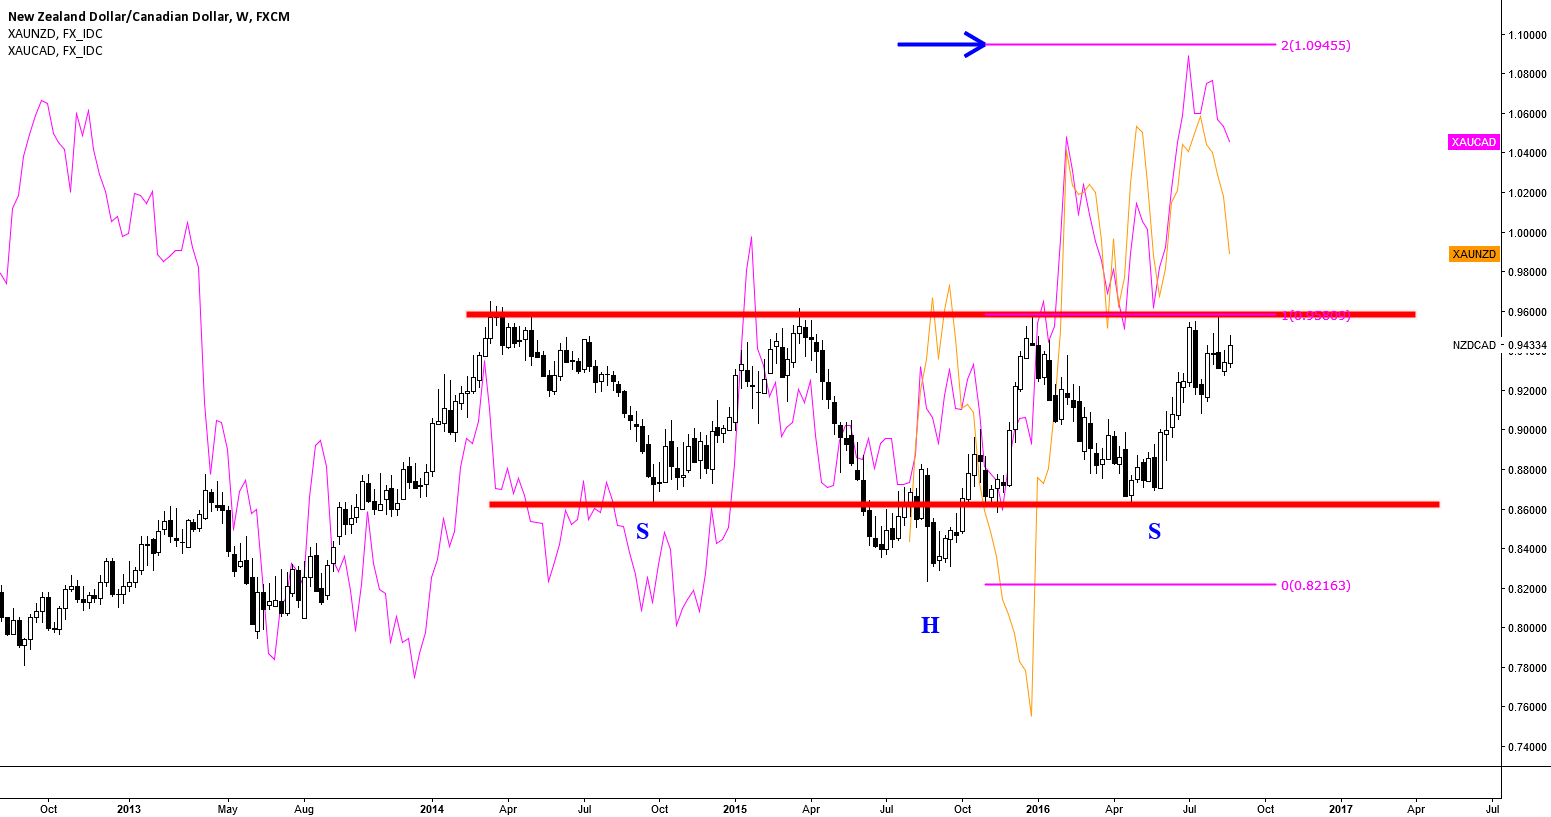 NZDCAD: A 2-YR OLD HnS PATTERN